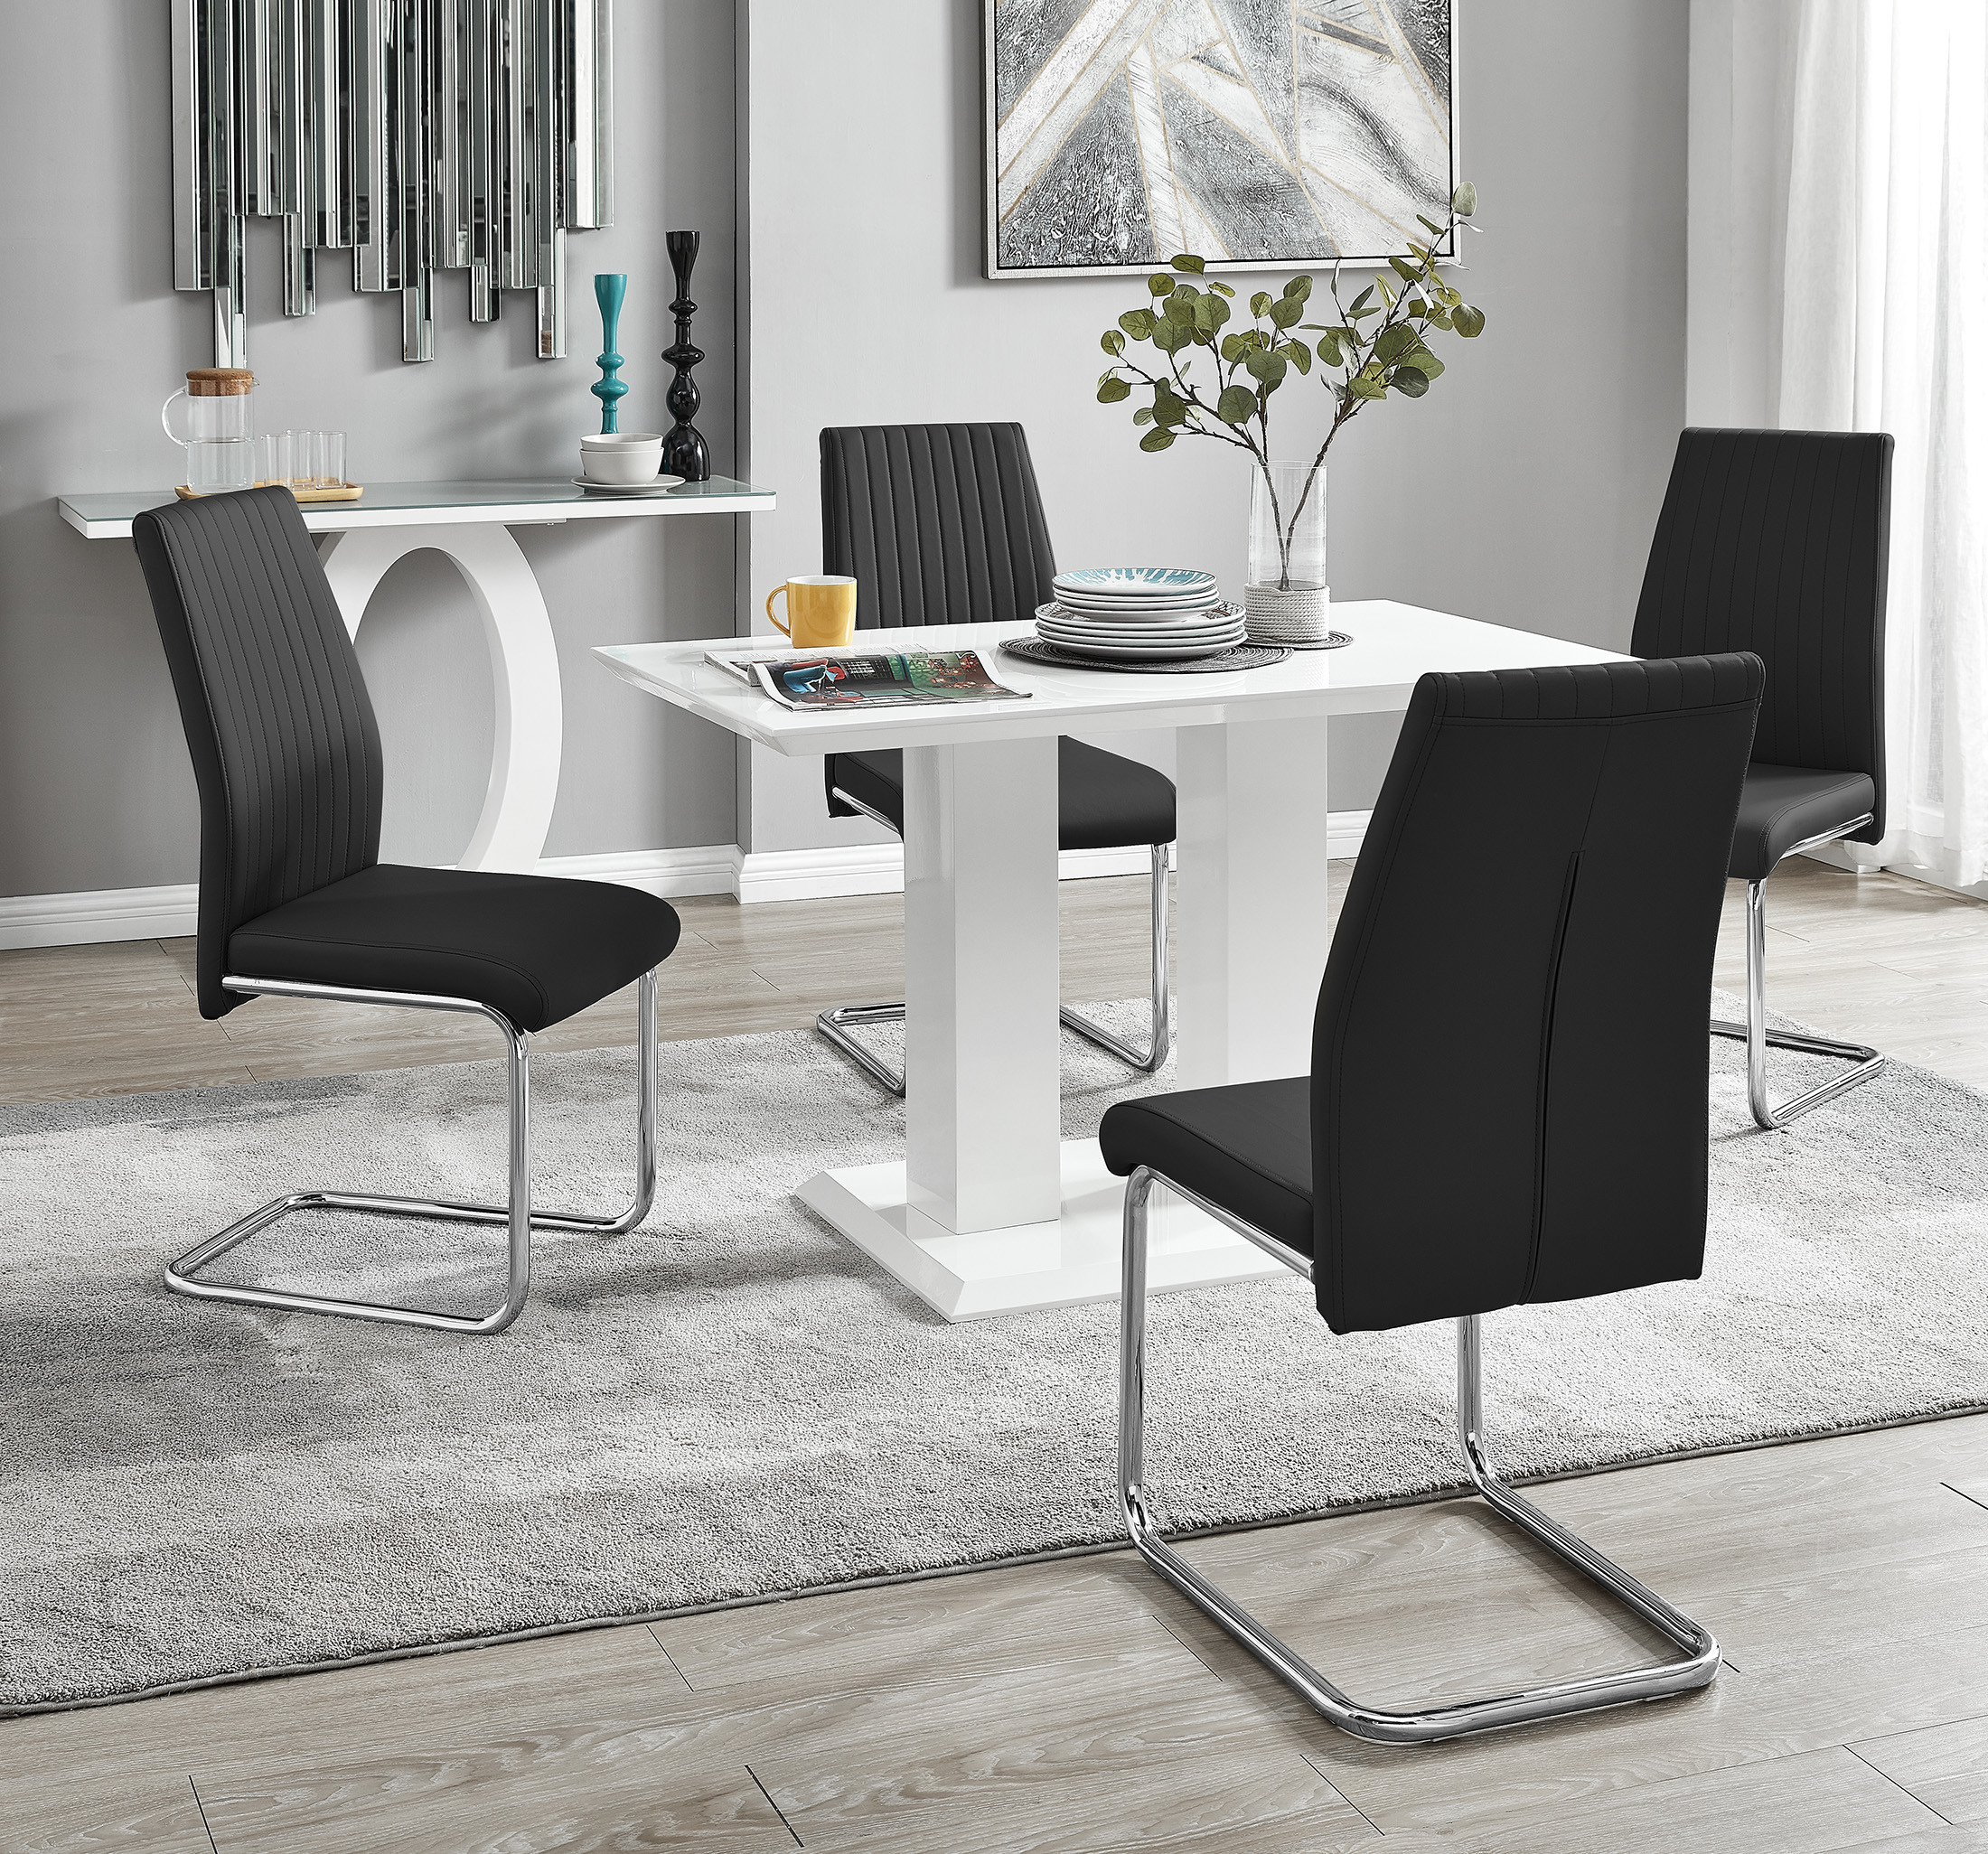 Imperia 9 Modern White High Gloss Dining Table And 9 Lorenzo Chrome Dining  Chairs Set